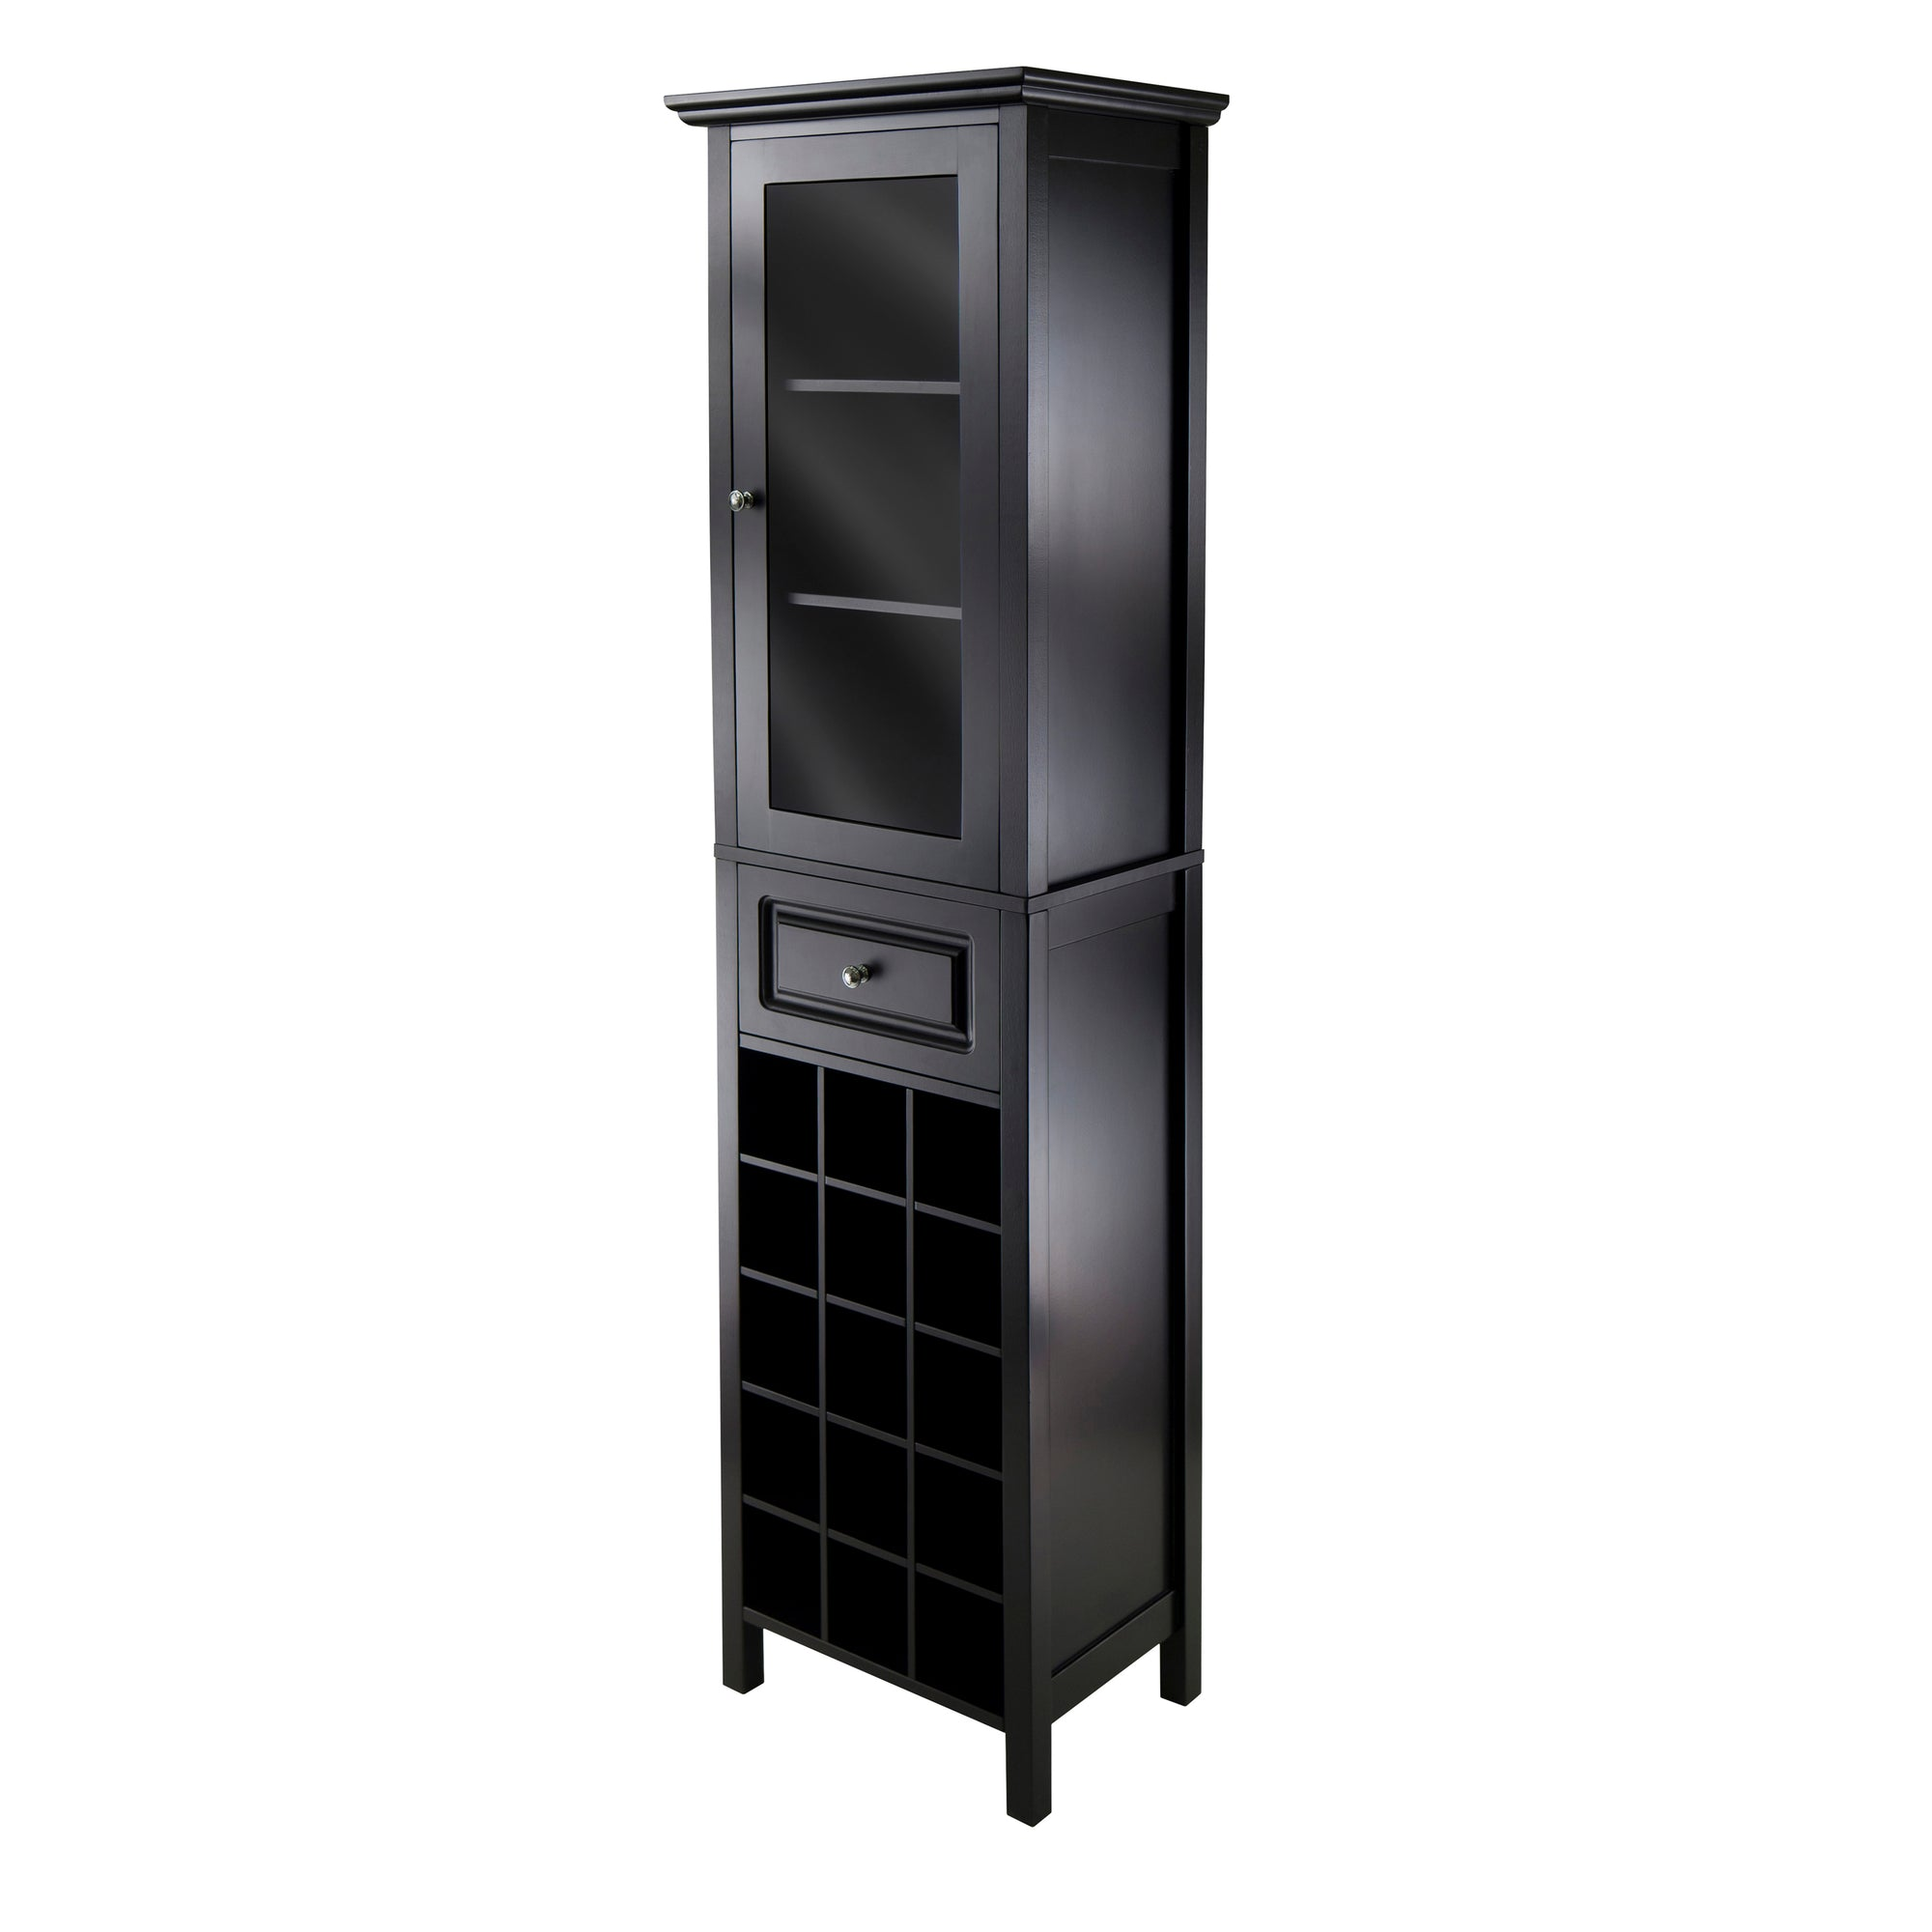 Tall Narrow Wine Cabinet Tower, See Through Door